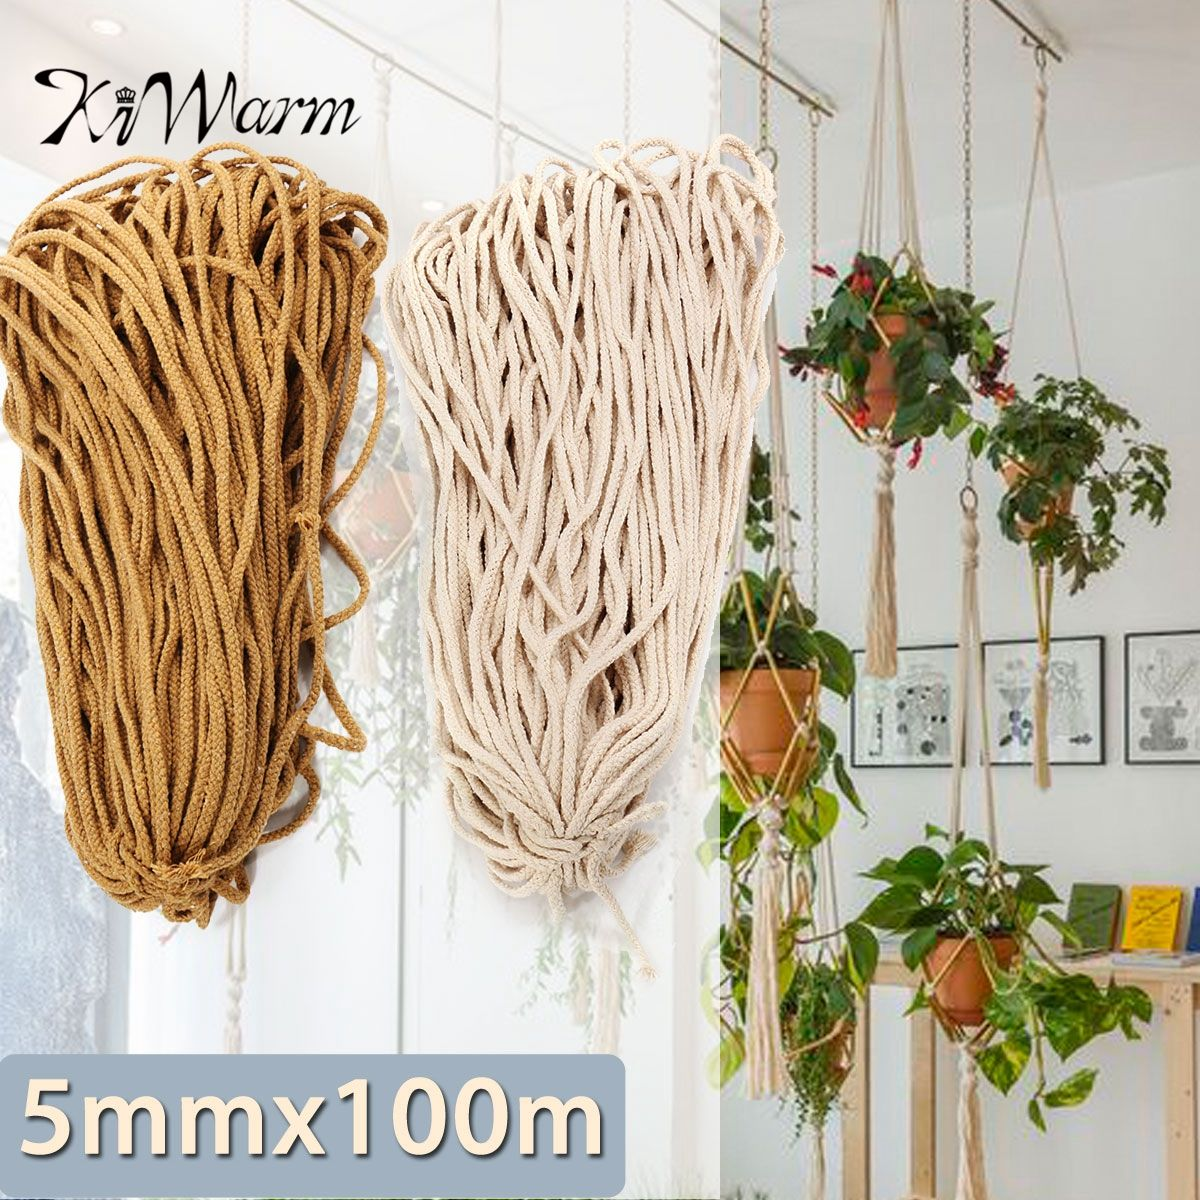 KIWARM 5mmx100m Braided Cotton Rope Twisted Cord Rope DIY Craft Macrame Woven String Home Textile Accessories Craft Gift